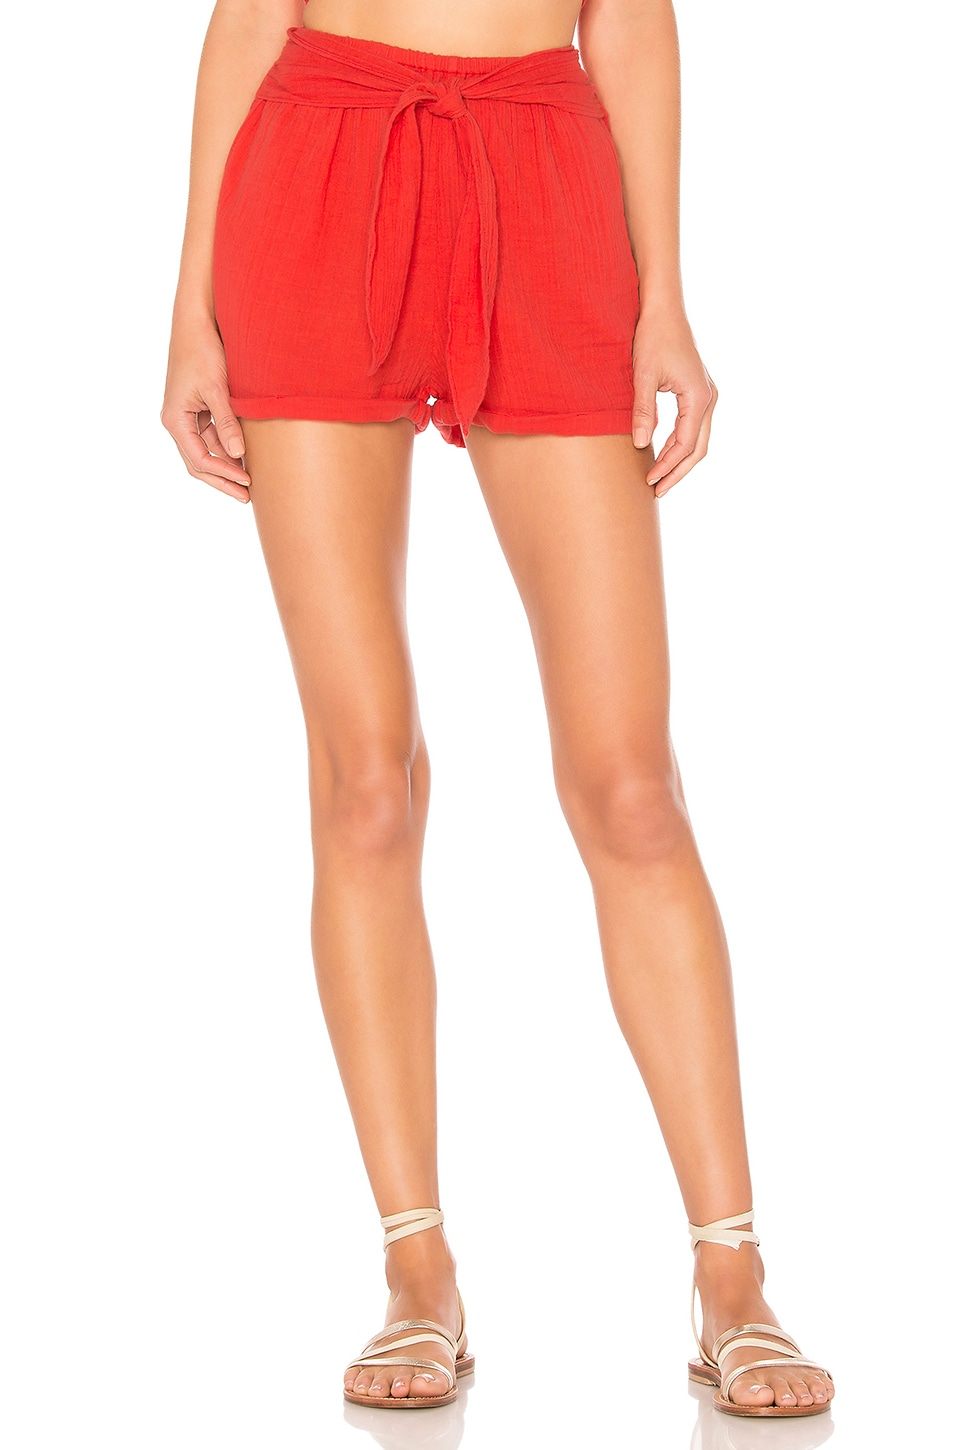 ANAAK Maithili Tie Shorts in Fire Red